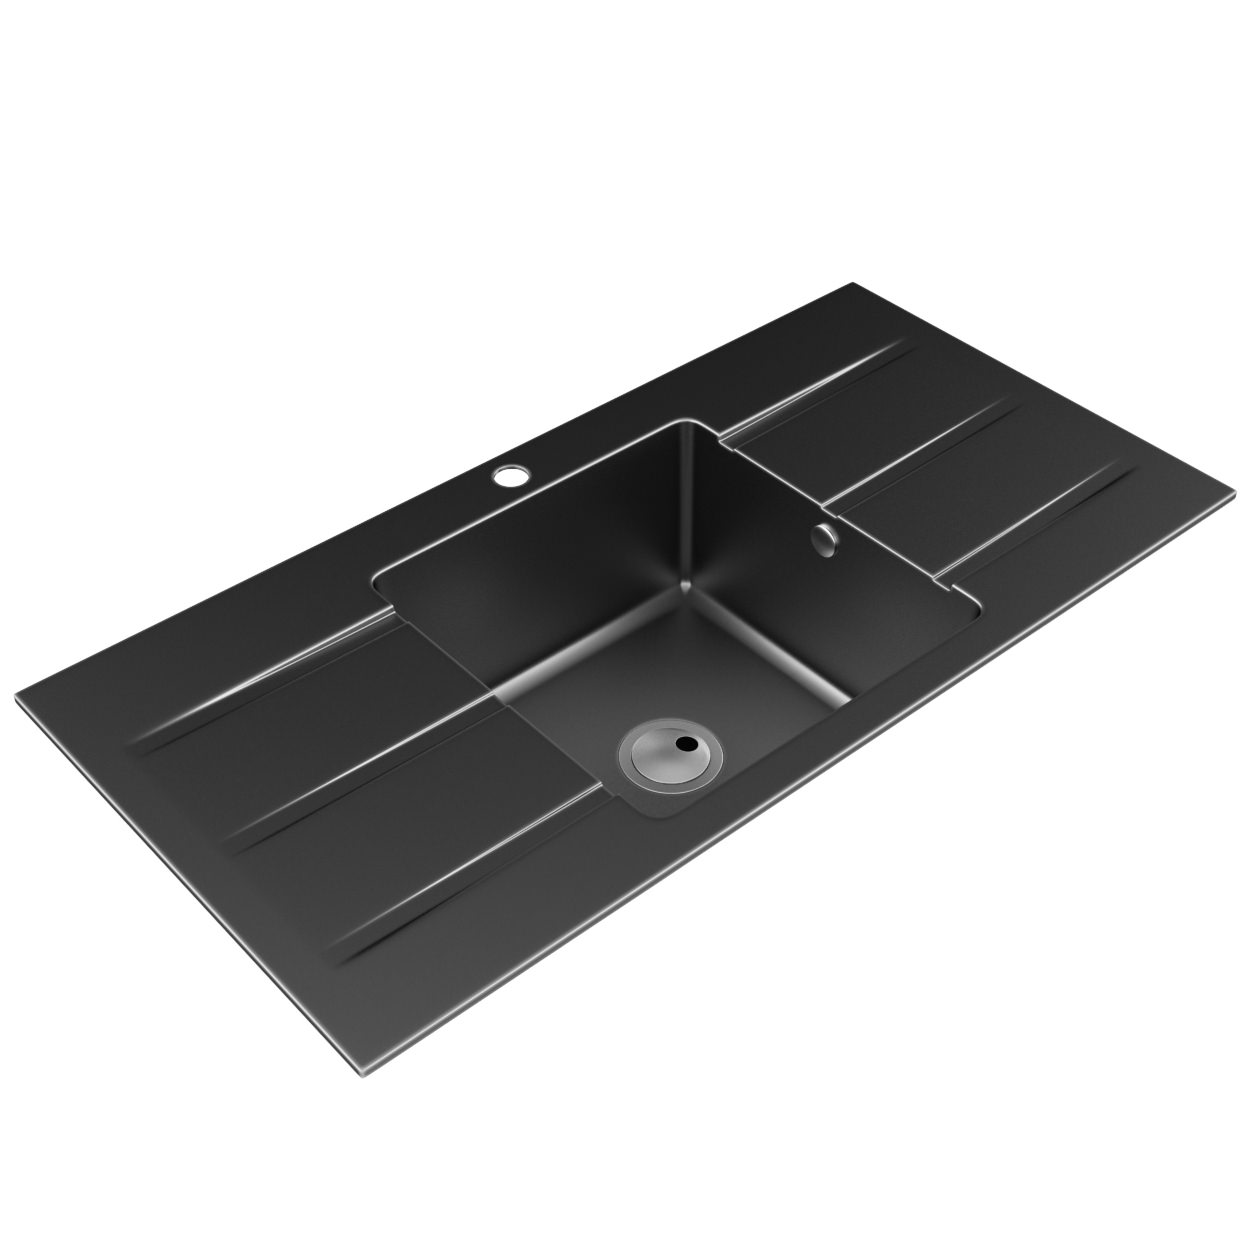 Double Drainer Double Drainer Kitchen Sink